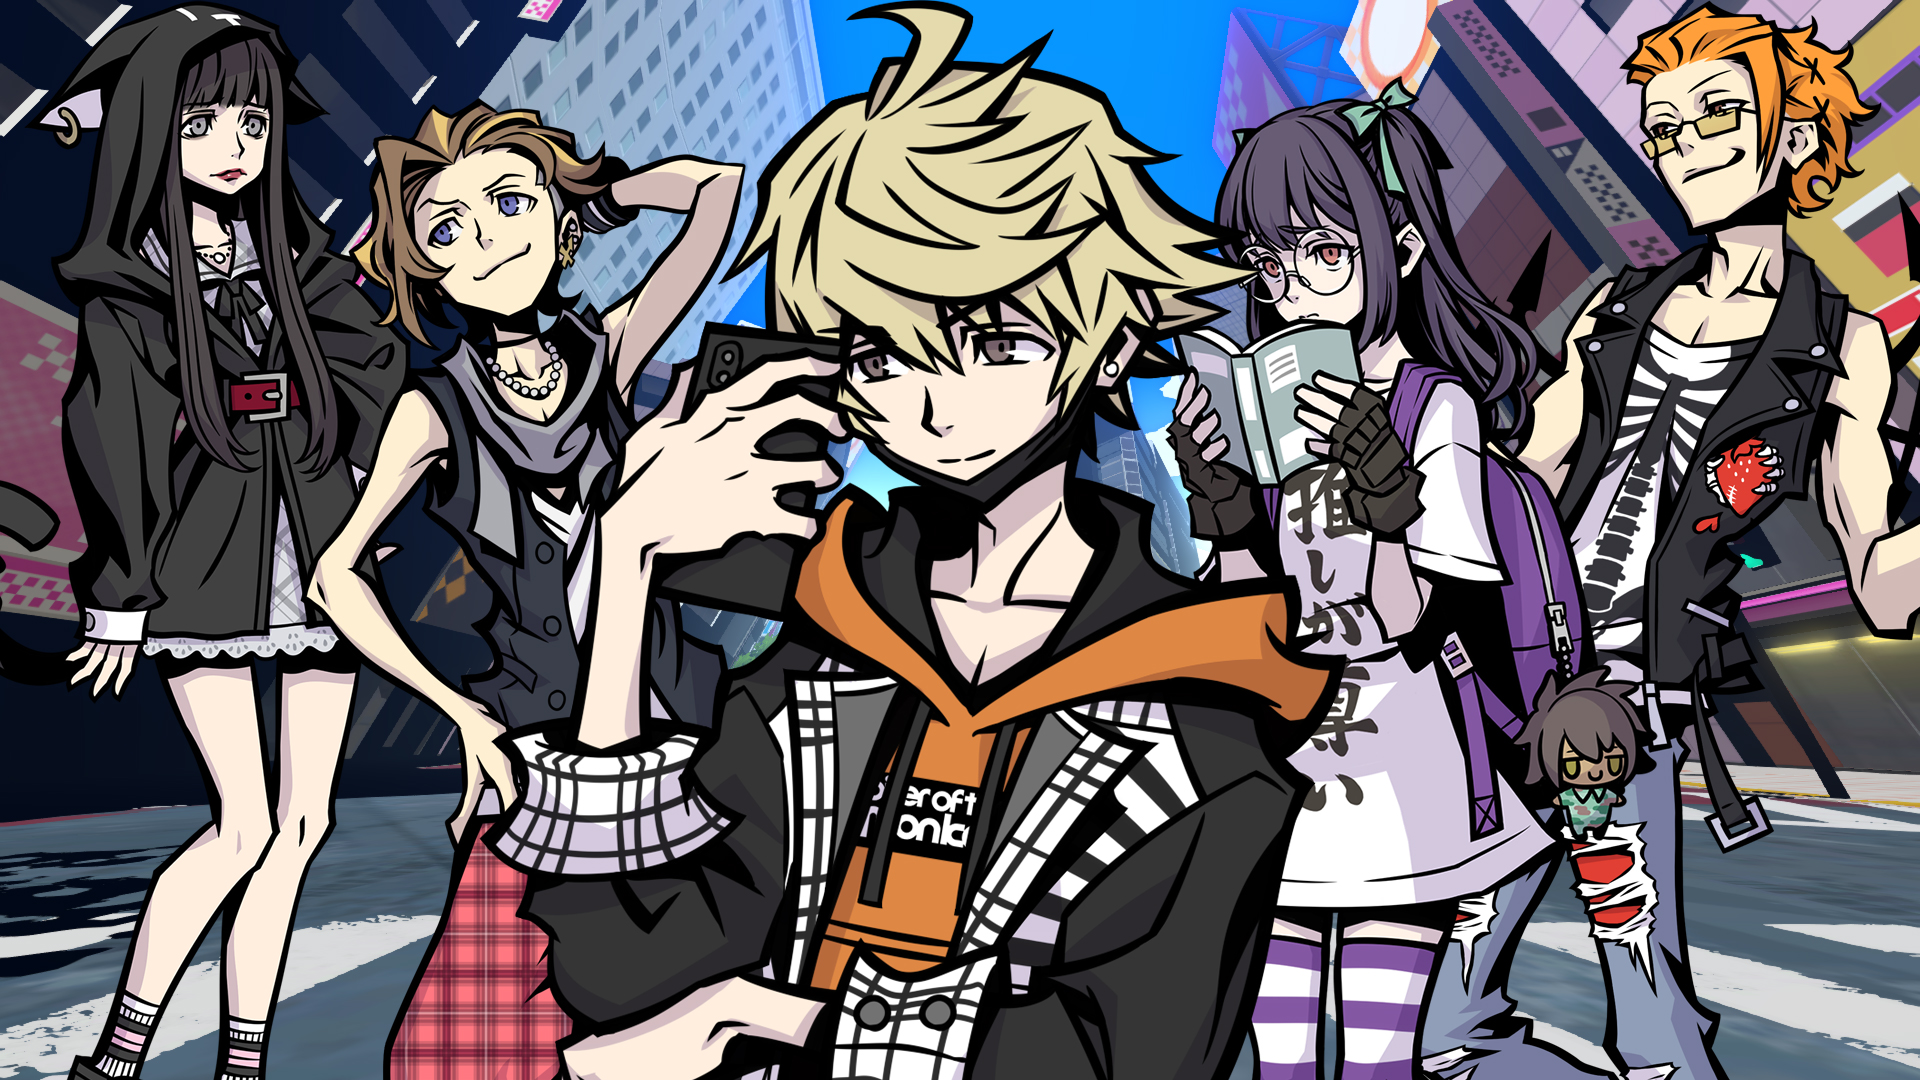 There's a reason NEO: The World Ends with You isn't called The World End with You 2 screenshot